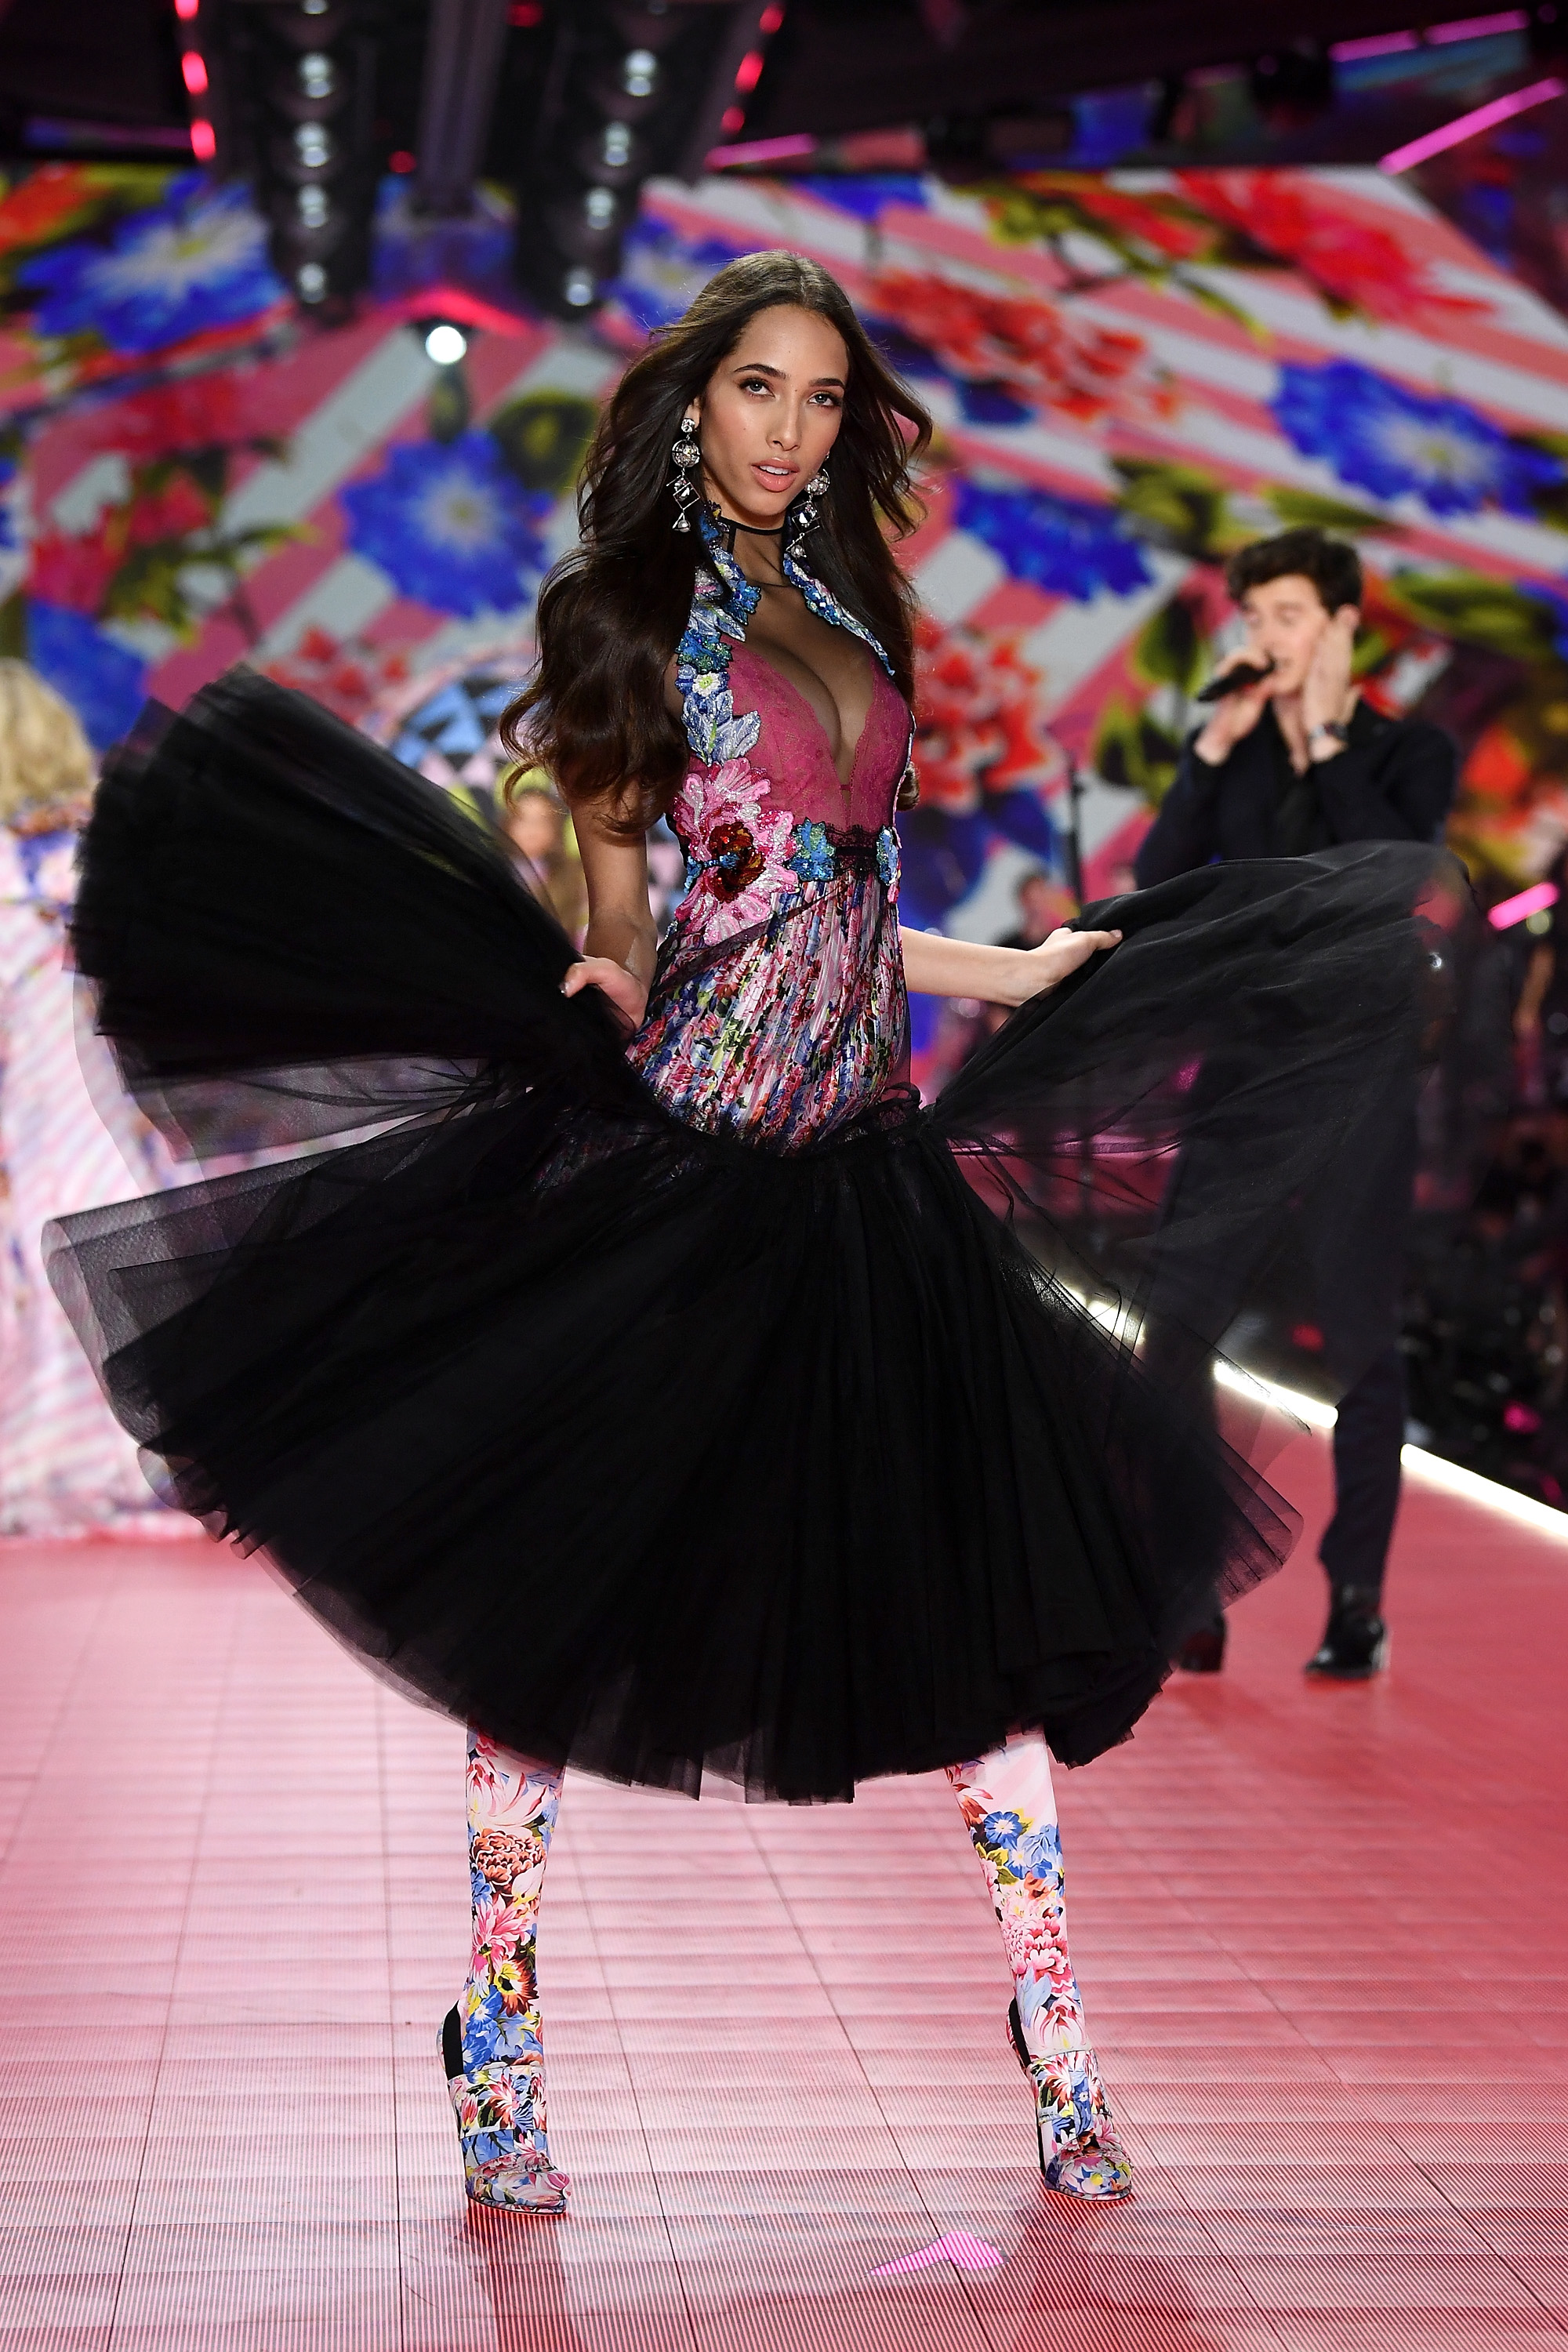 Yasmin Wijnaldum walks the runway during the 2018 Victoria's Secret Fashion Show at Pier 94 on November 8, 2018, in New York City. (Getty Images)